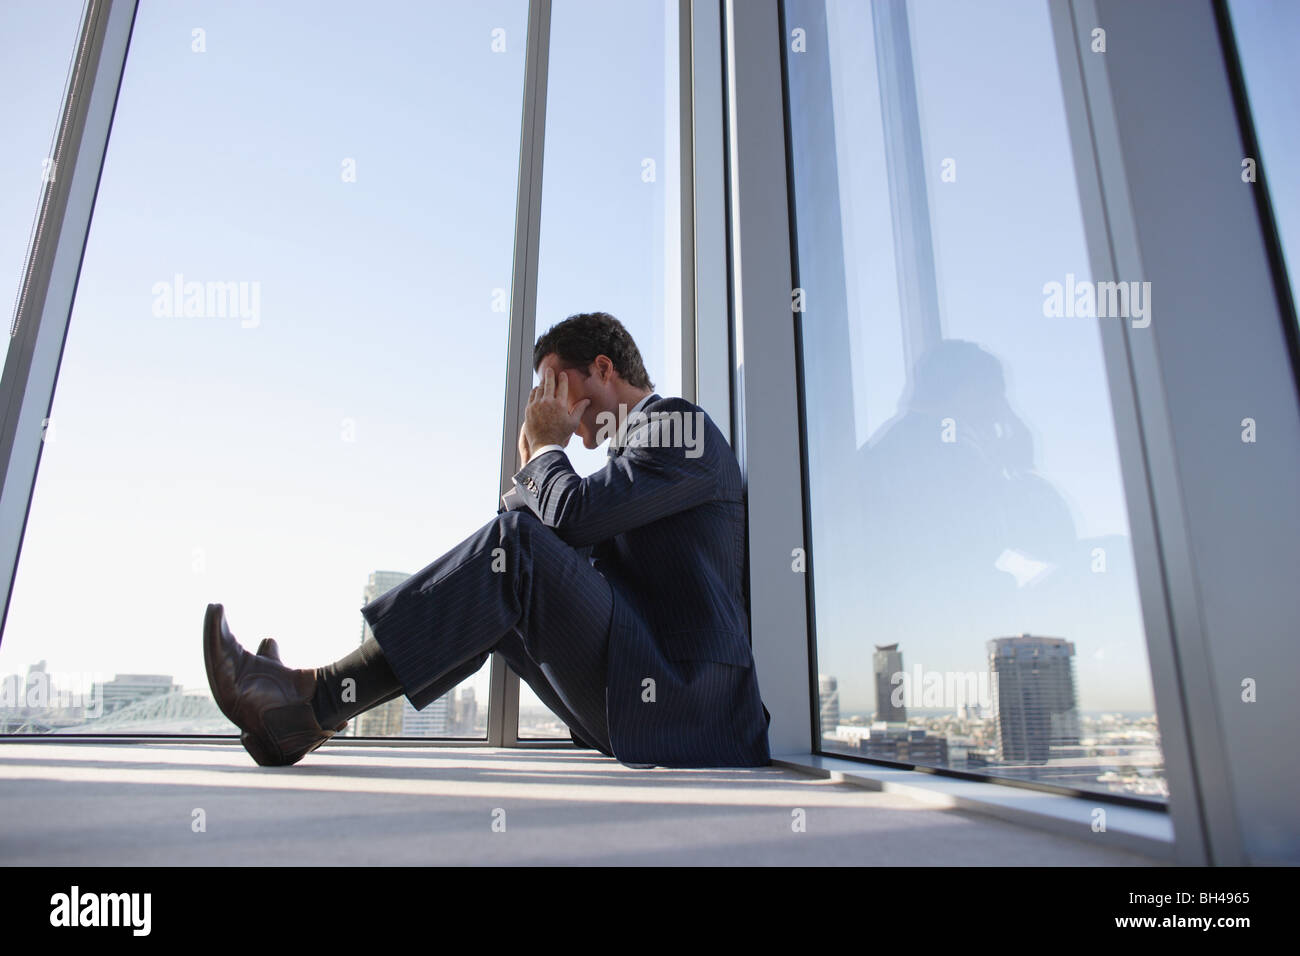 A businessman sitting on the floor in the corner of an office skyscraper with his head in his hands - Stock Image